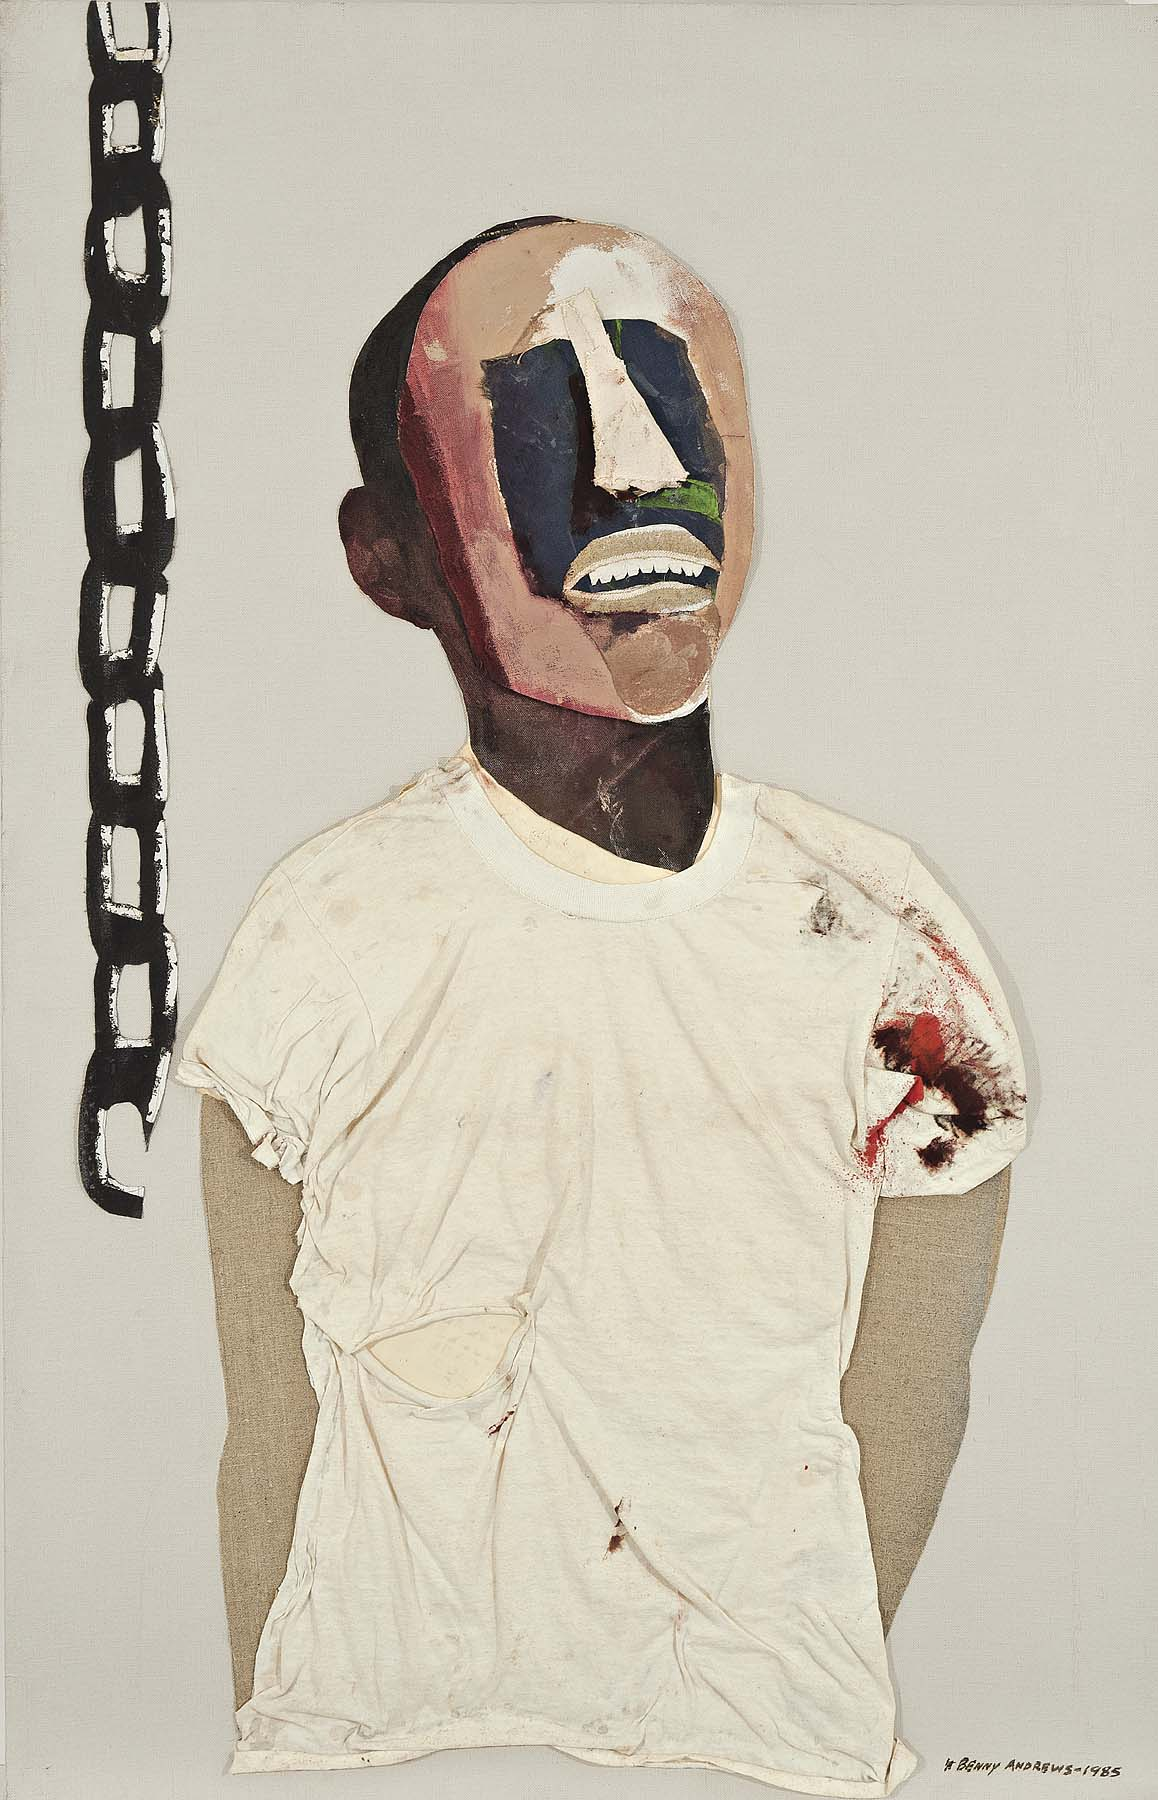 Study for Portrait of Oppression (Homage to Black South Africans),  1985 oil and collage on canvas 44 x 28""